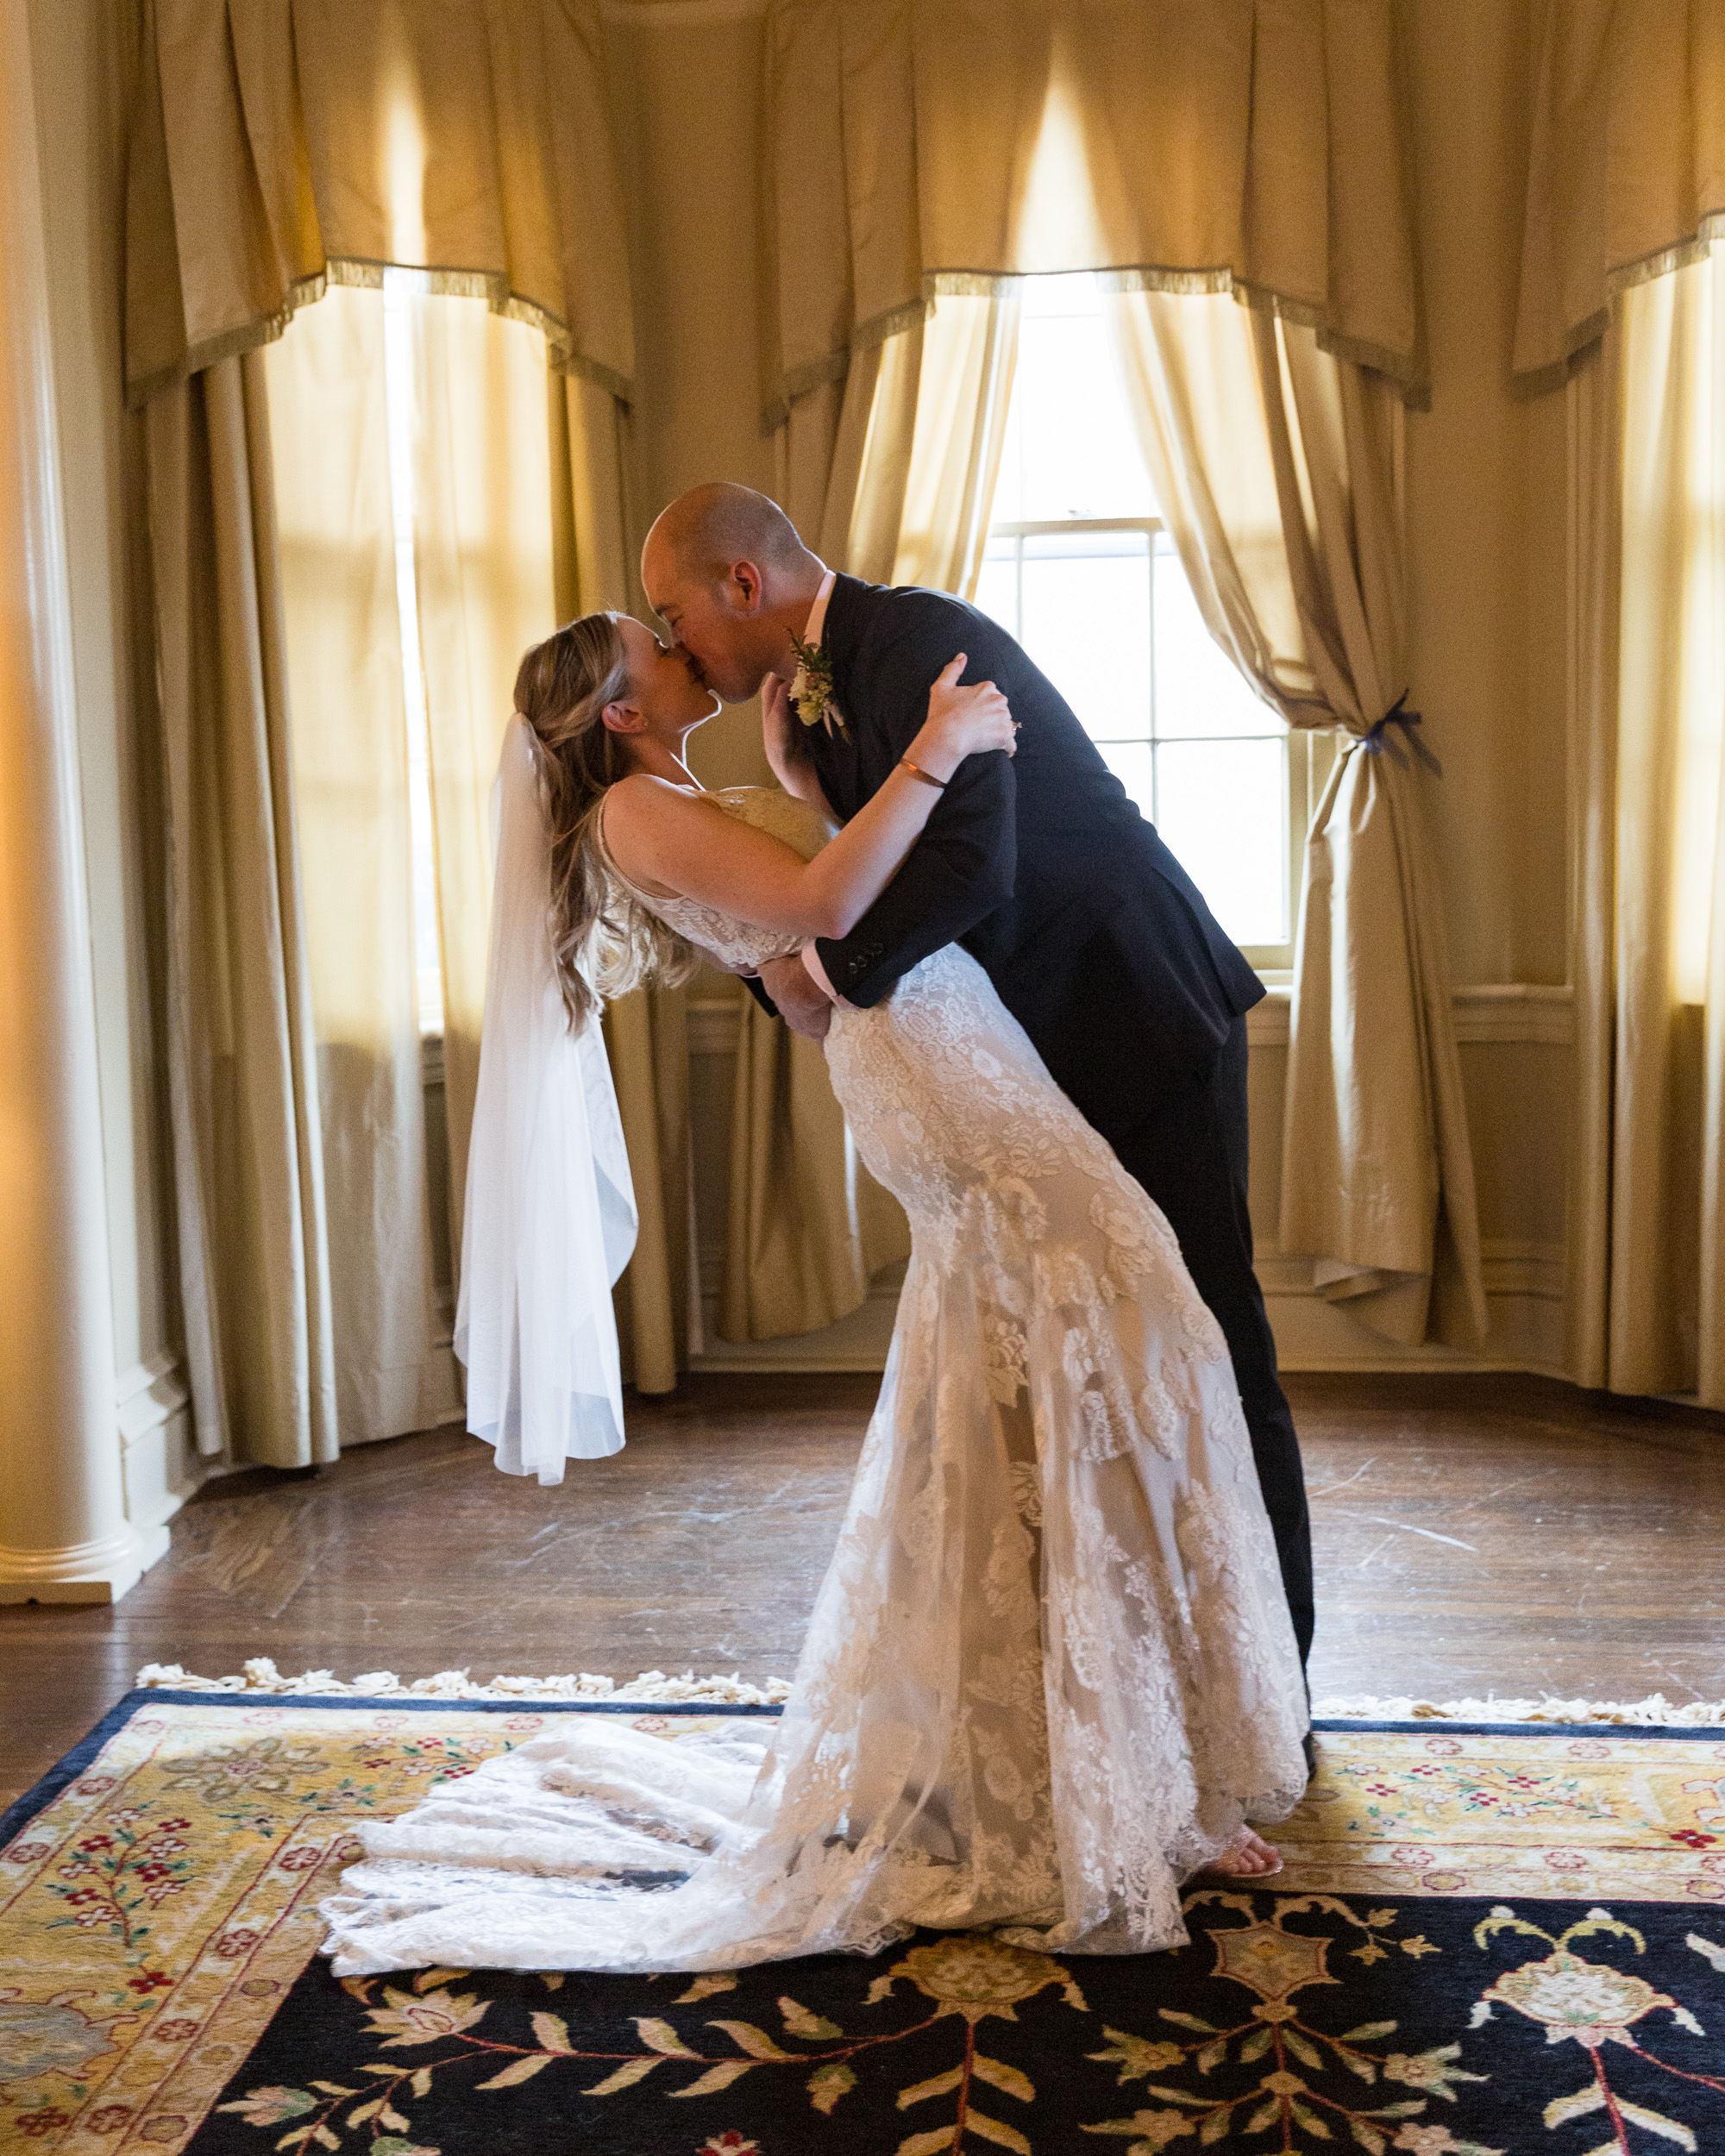 Elegant bride and groom kiss with a dip after saying their vows at the historic Sayre Mansion in Bethlehem, PA by Laura Billingham Photography